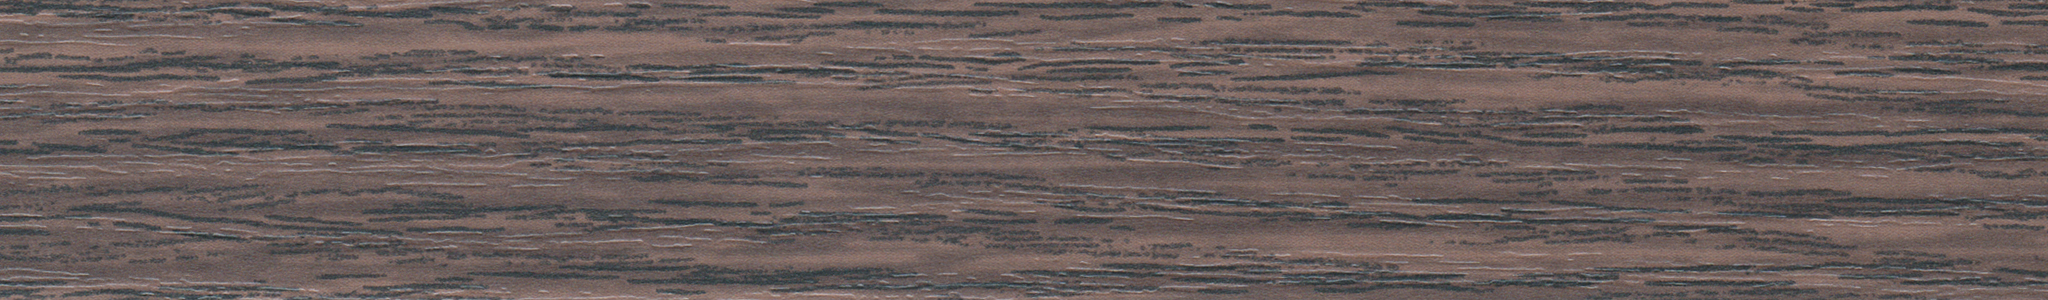 HD 44302 Melamine Edge Stained Oak Pore